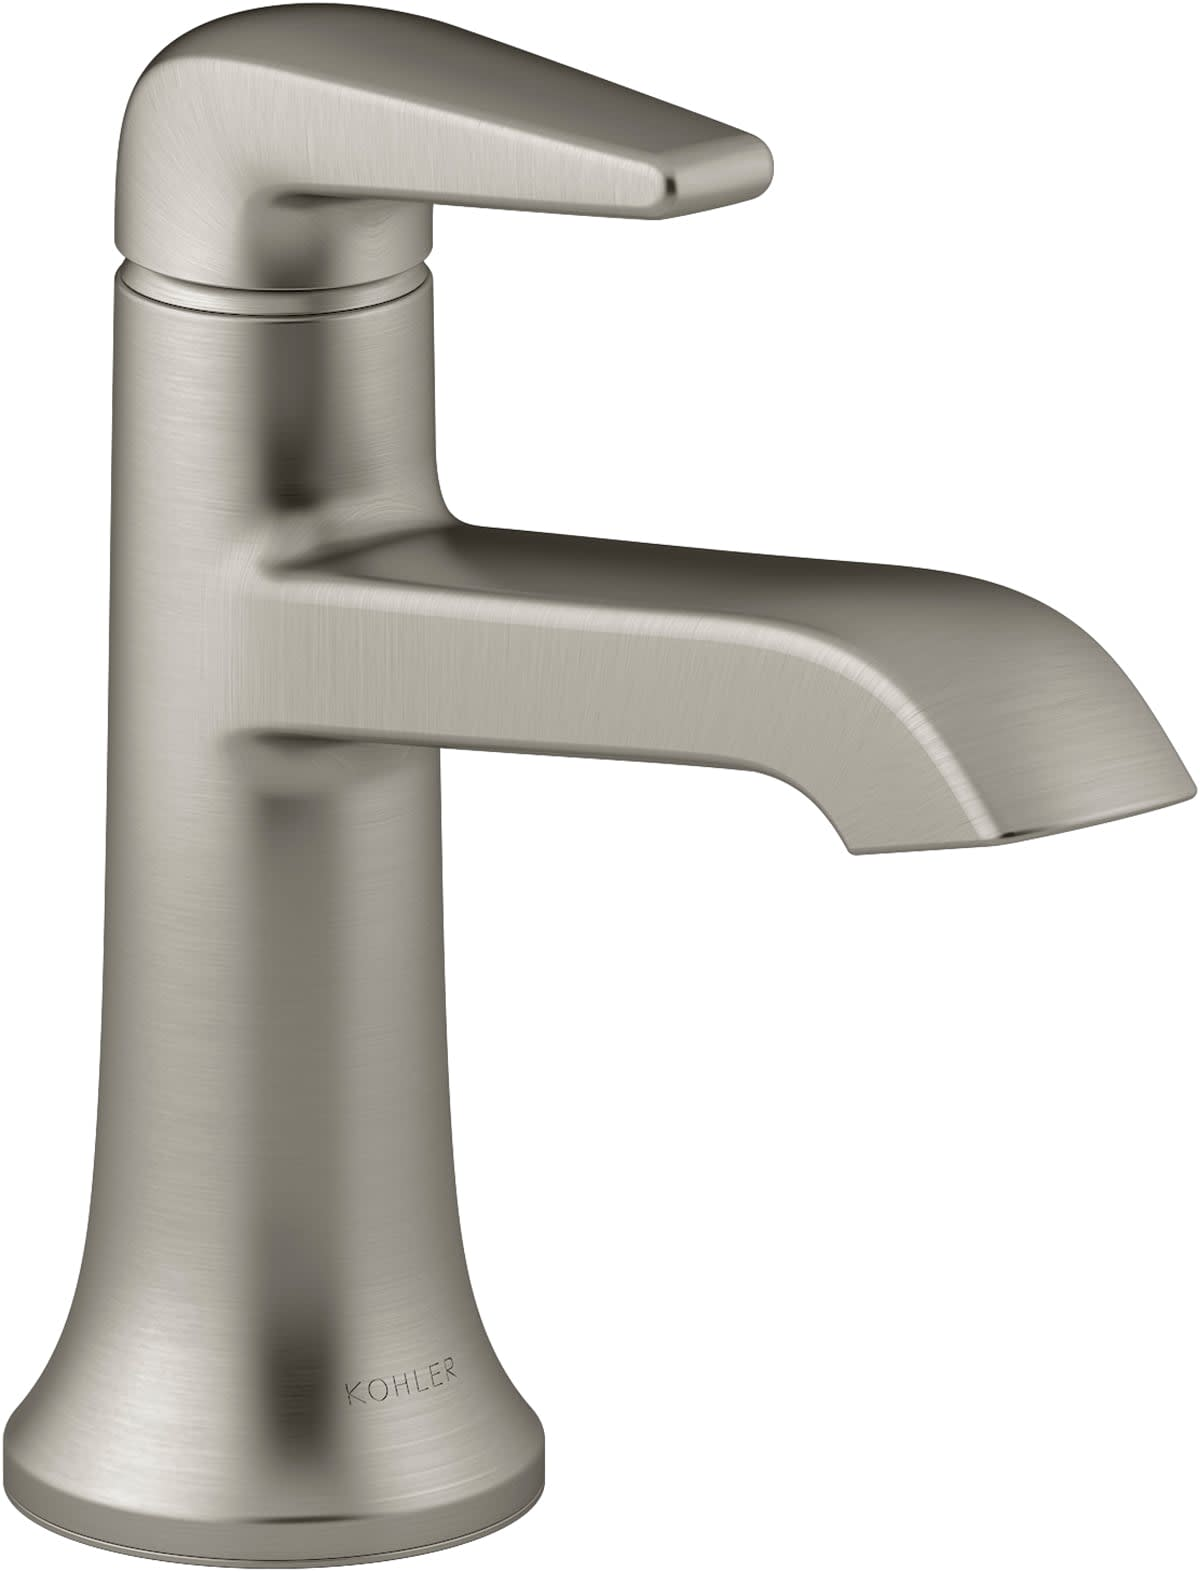 Kohler K 22022 4 Bn Vibrant Brushed Nickel Tempered 1 2 Gpm Single Hole Bathroom Faucet With Pop Up Drain Assembly Faucetdirect Com